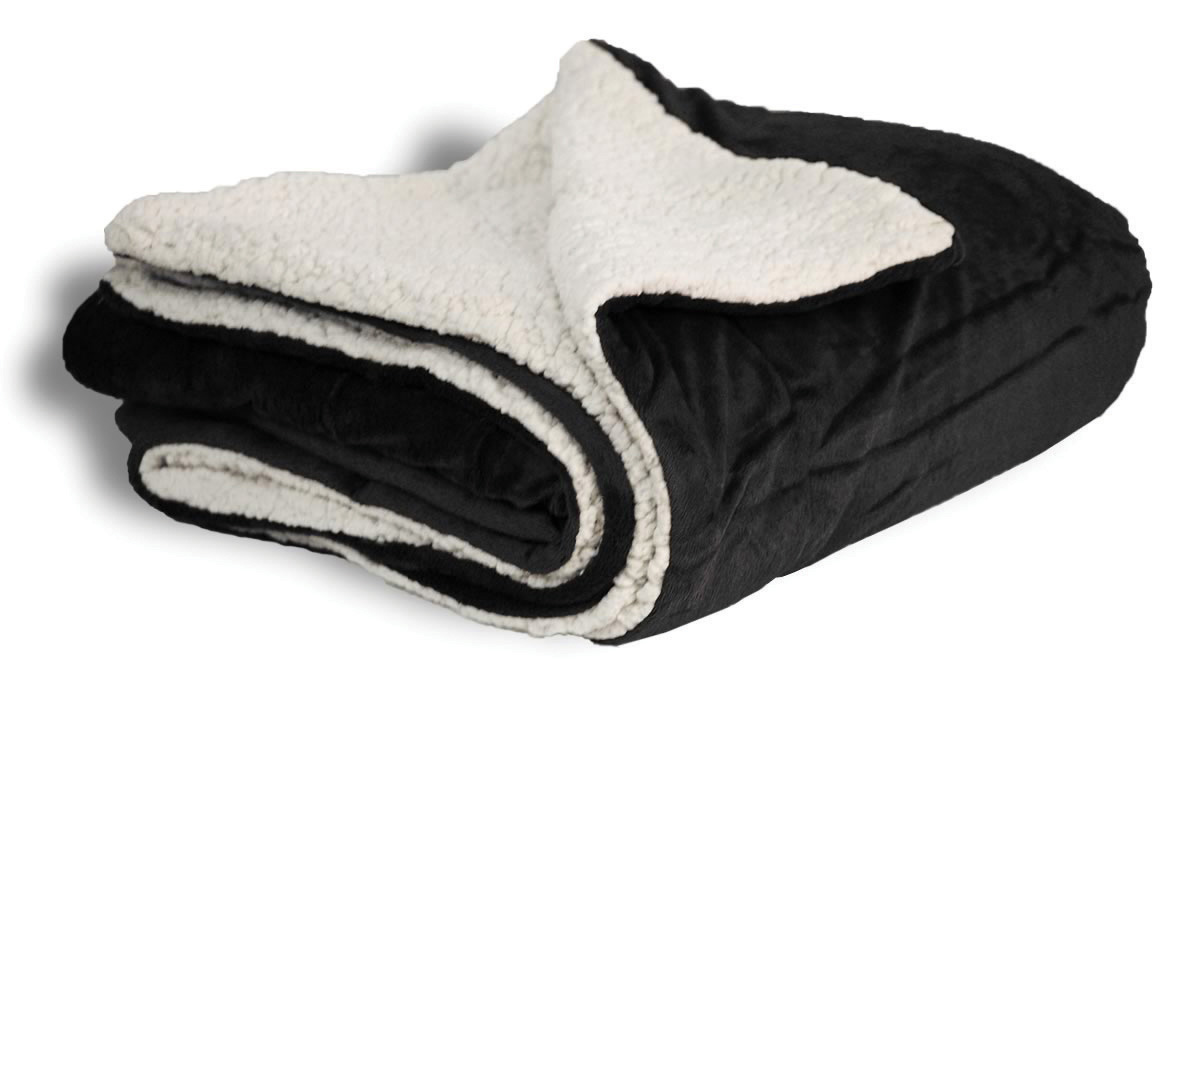 CLOSE OUT SALE 50x60 Black Micro Mink Sherpa Blanket